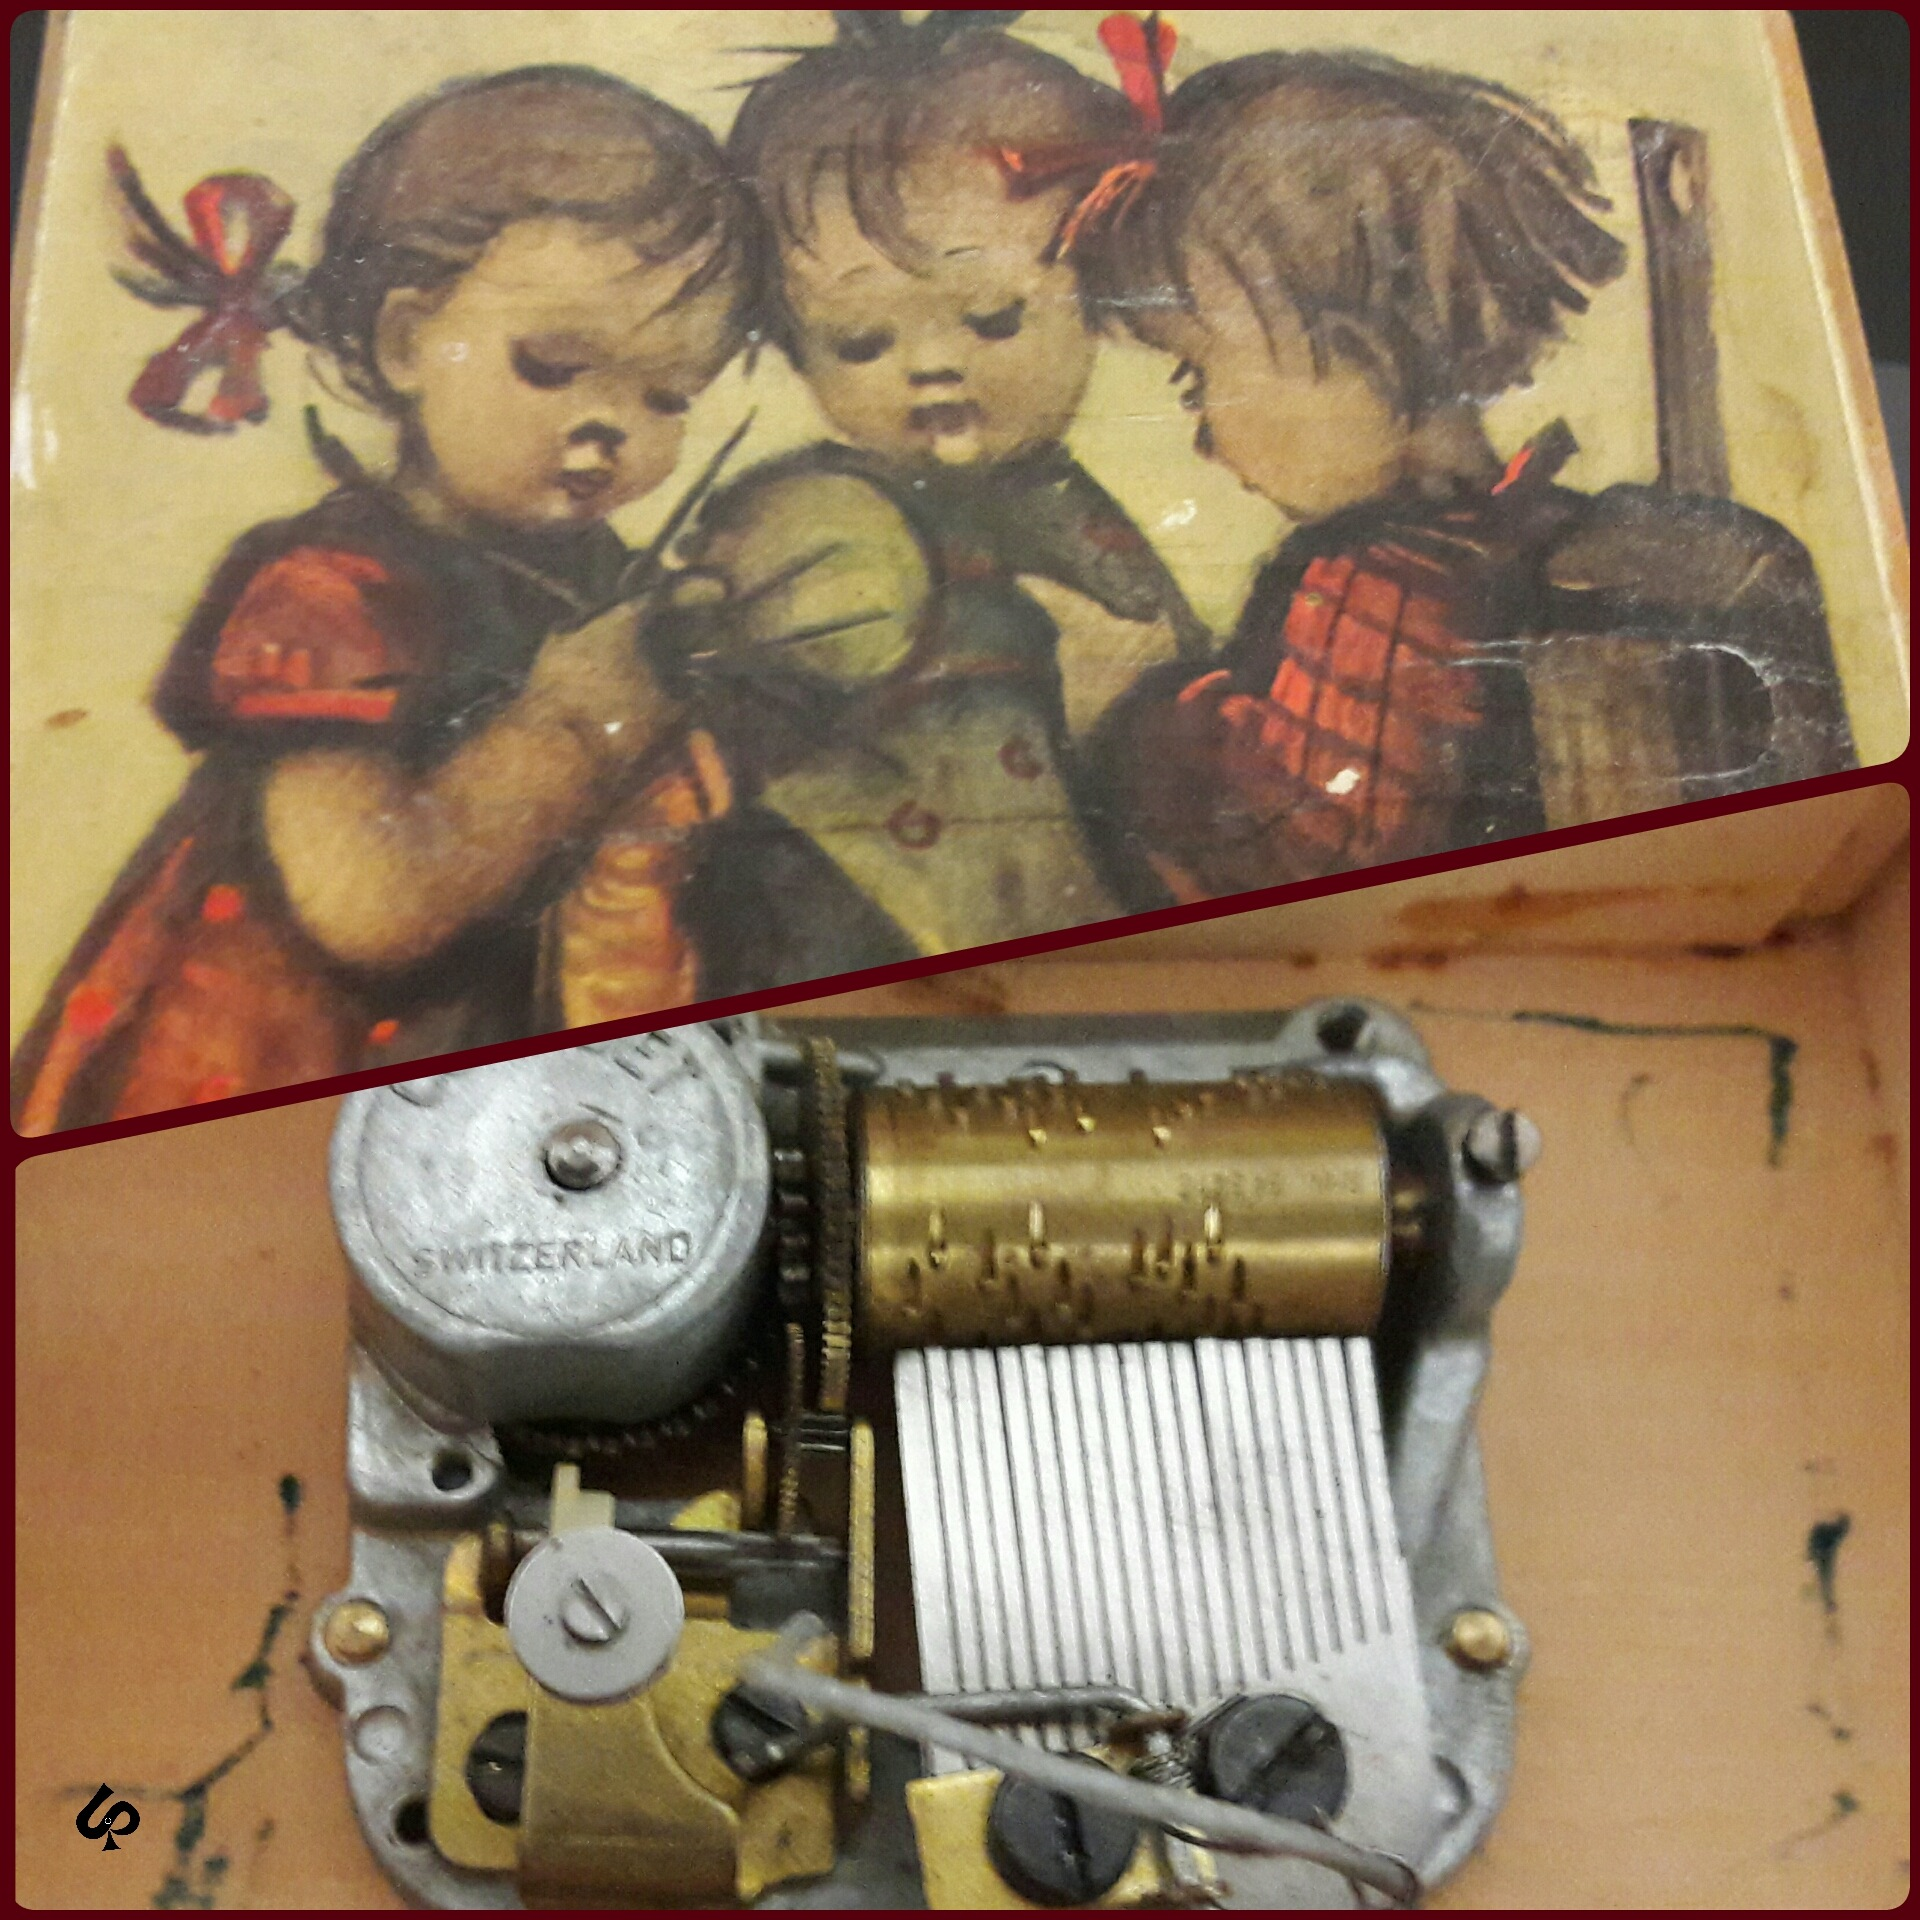 old music box by Isa Bel